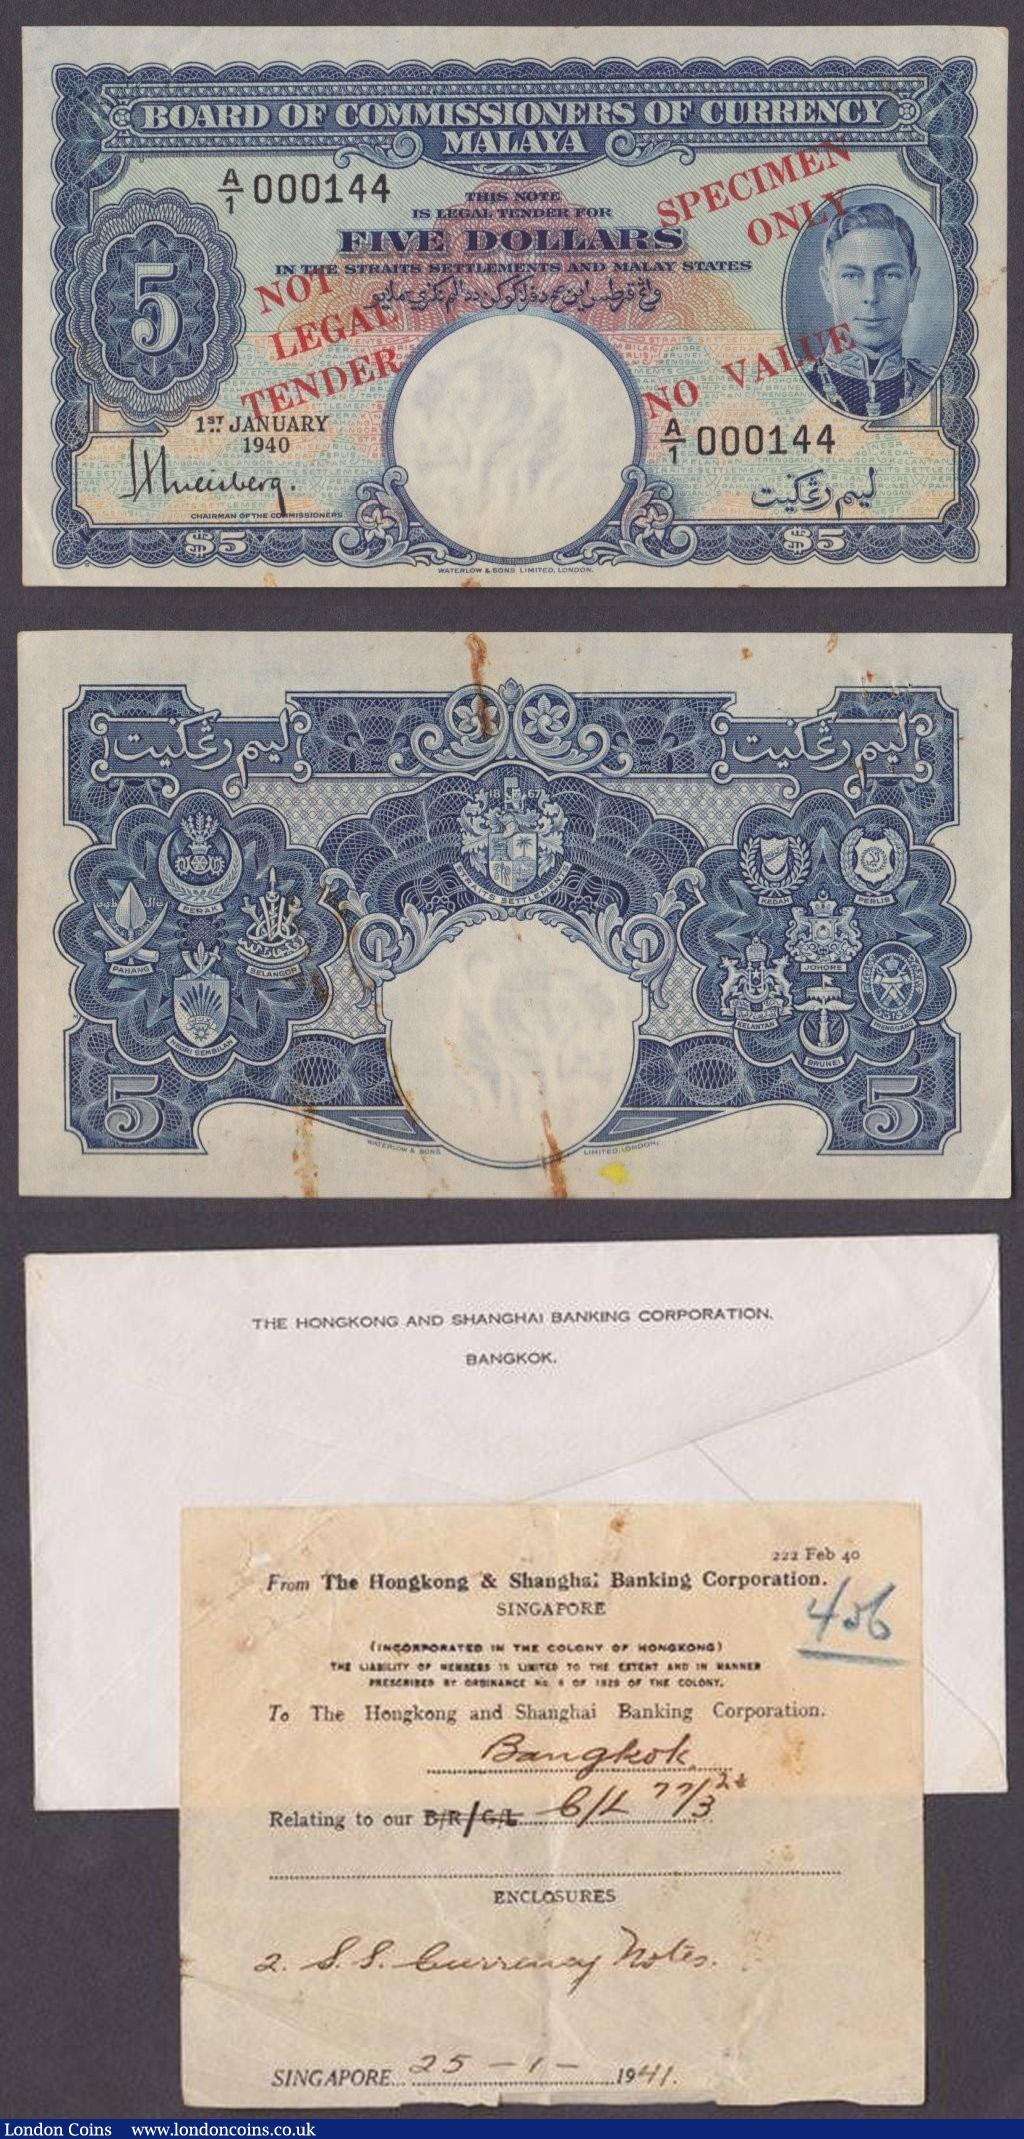 Malaya Board of Commissioners of Currency 1940 issues KGVI portrait, $1 in green, low serial A/1 000128 and $5 in blue, low serial A/1 000144, overprinted